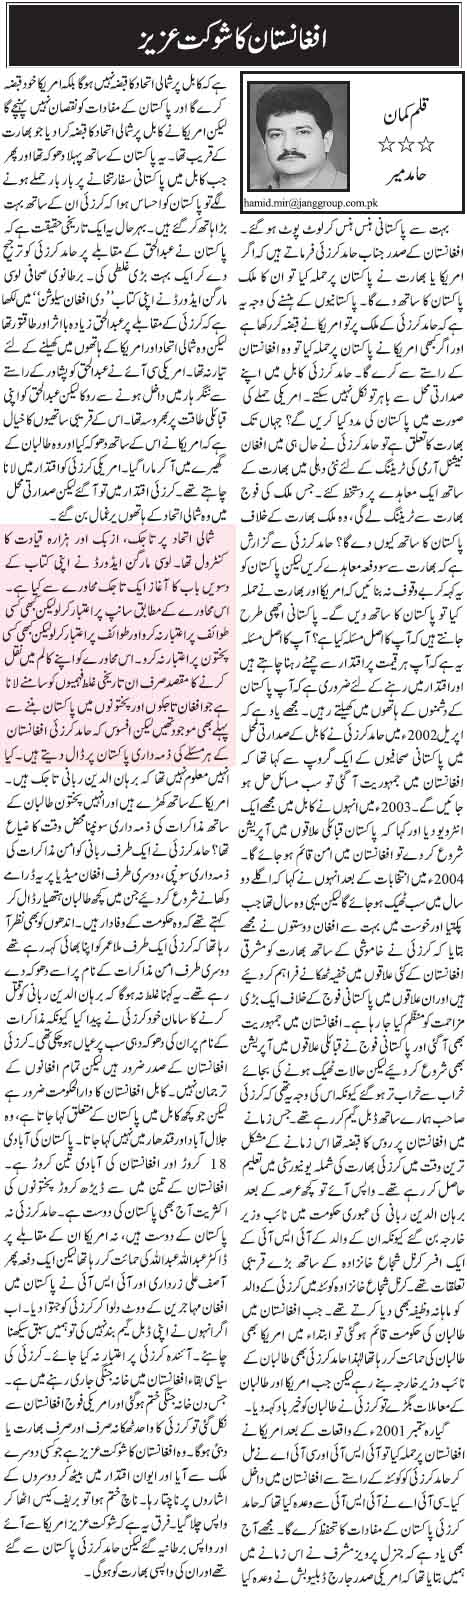 hamid mir column 24 oct 2011 in jang